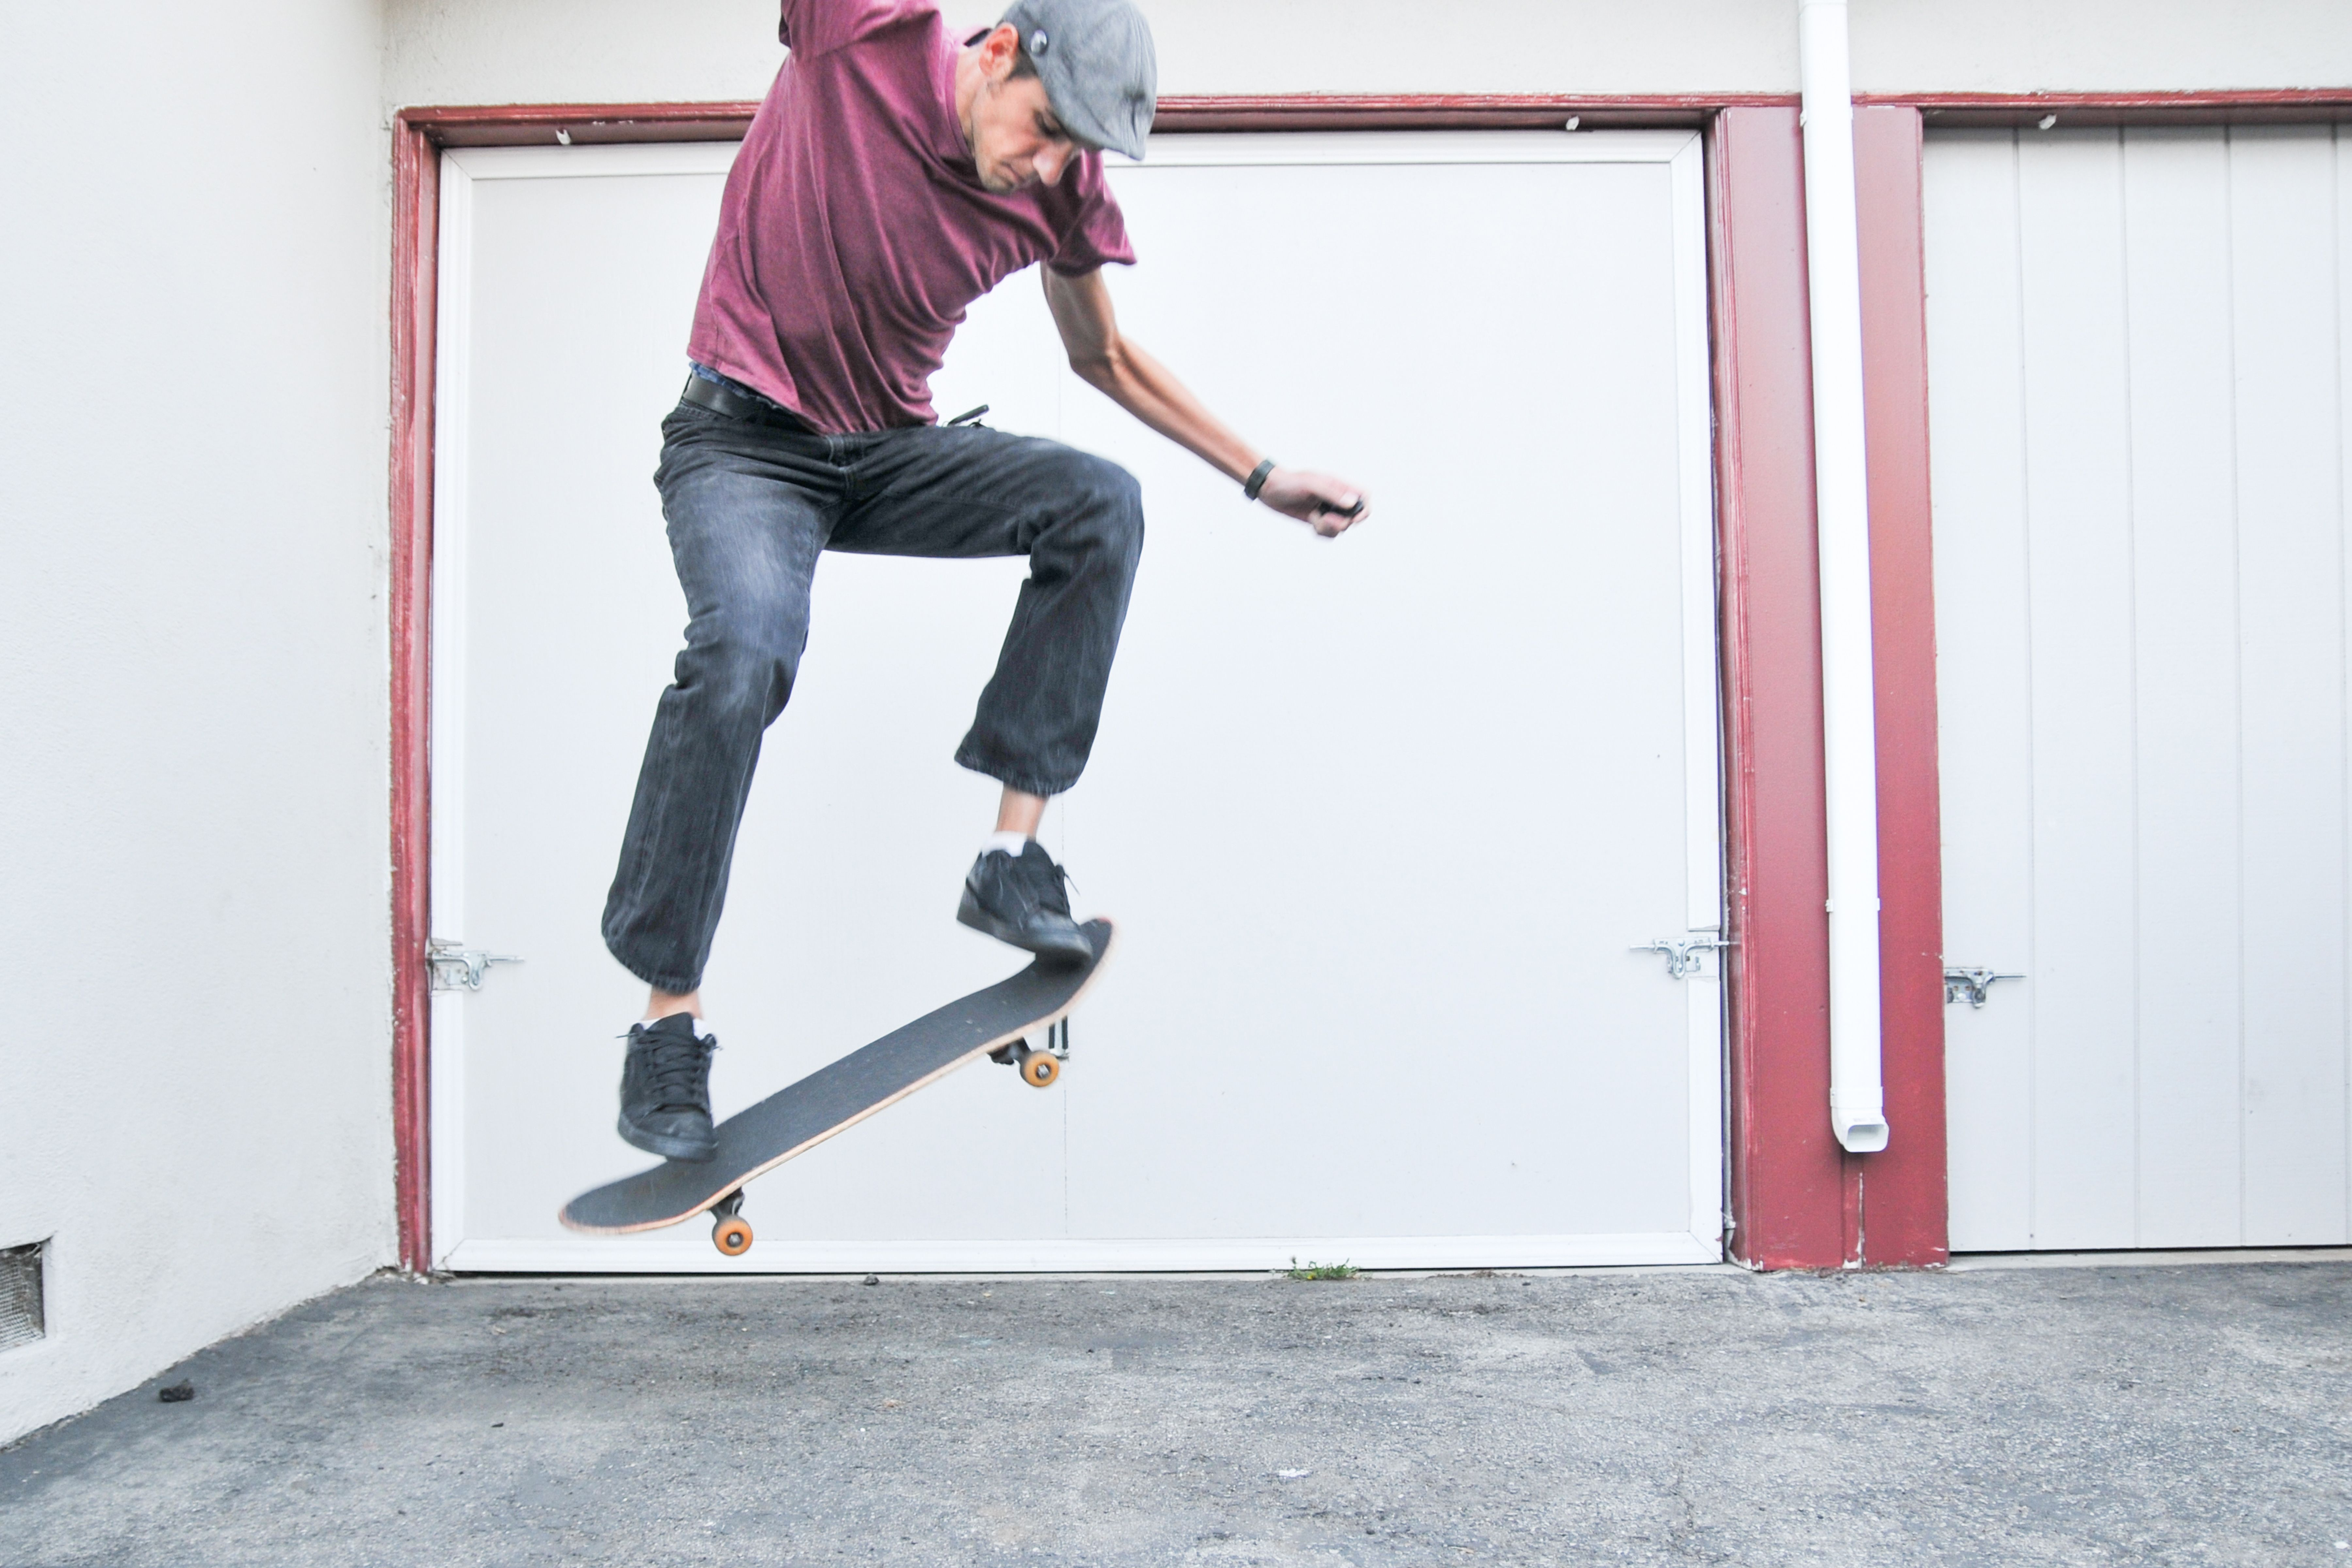 The First 10 Tricks You Should Learn On A Skateboard Skateboard Learning